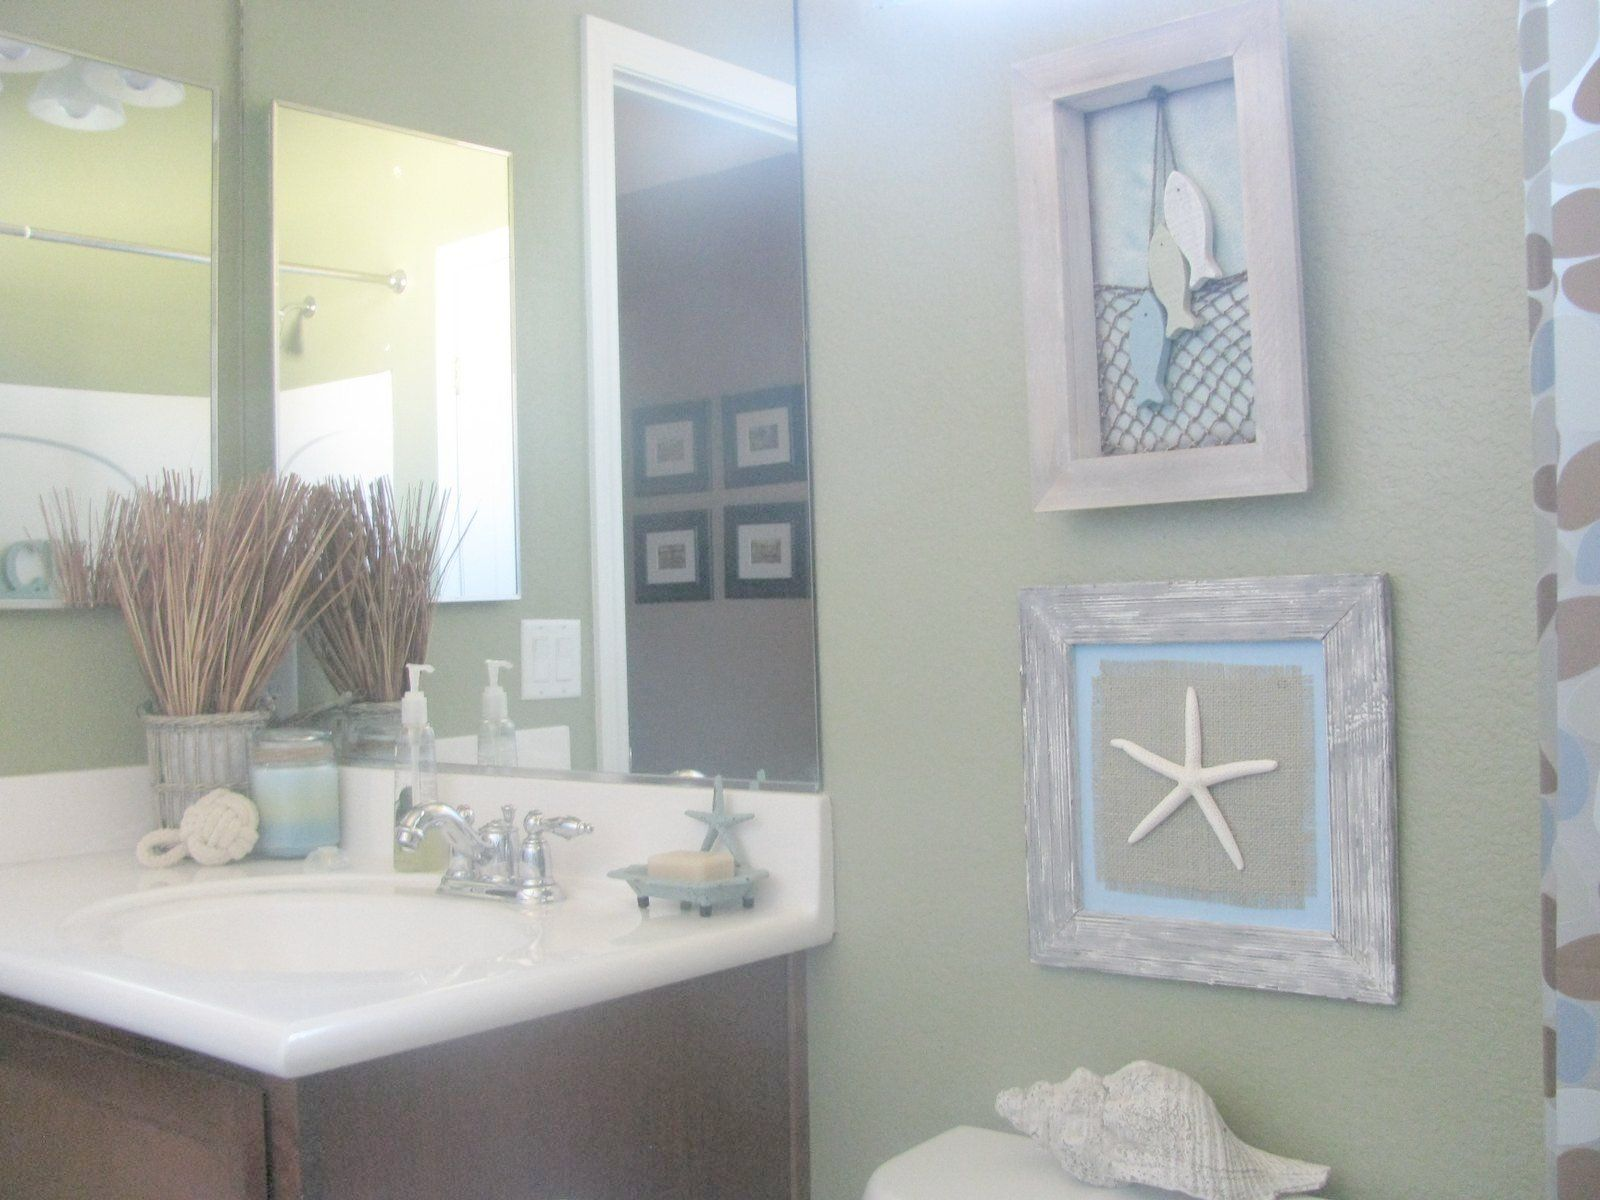 sand colored bathroom with light color (sea glass green) accents